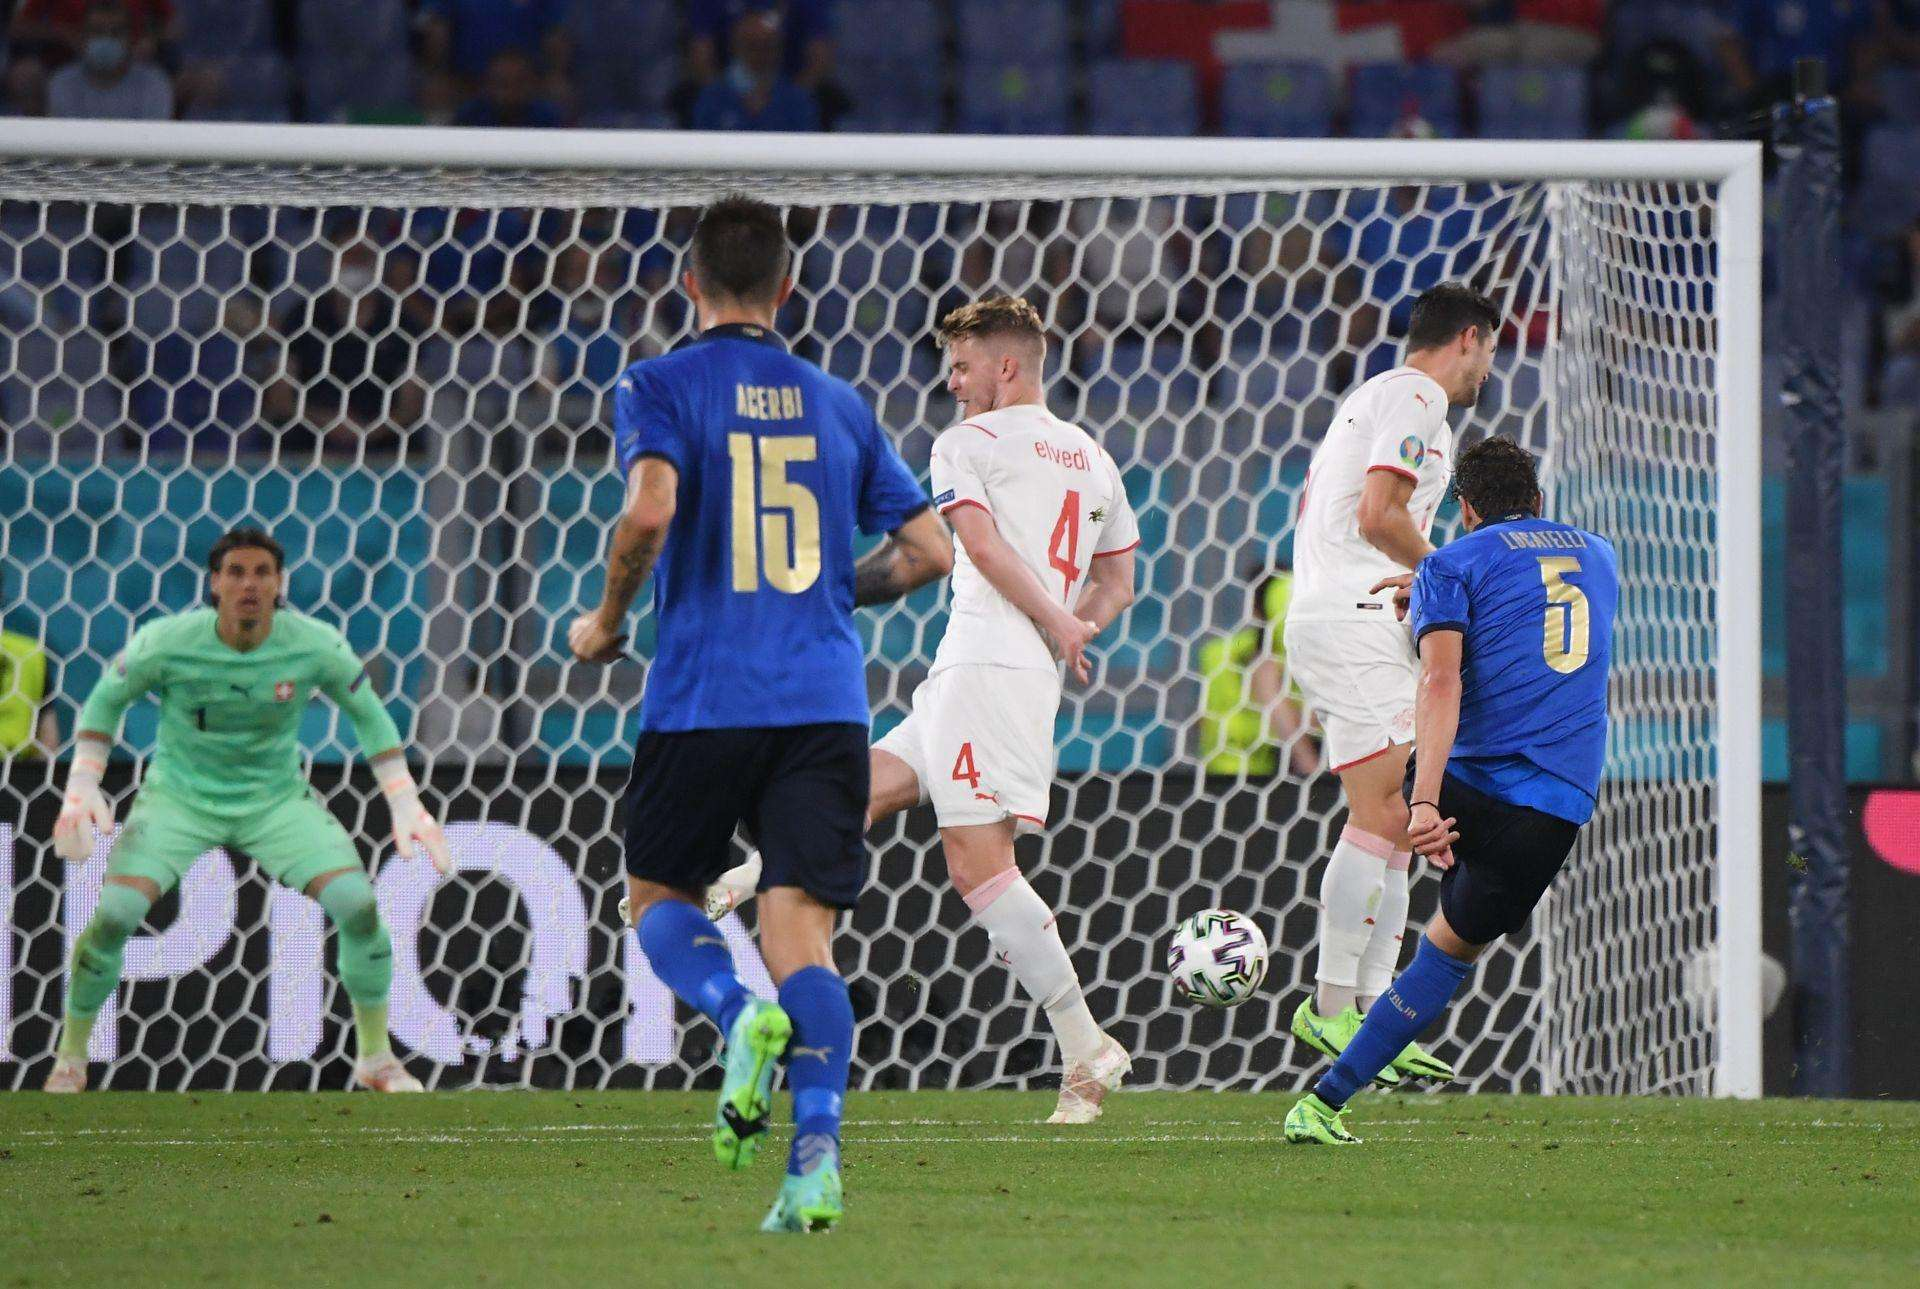 New Italy is the first to qualify, Arabic newspaper -Profile News